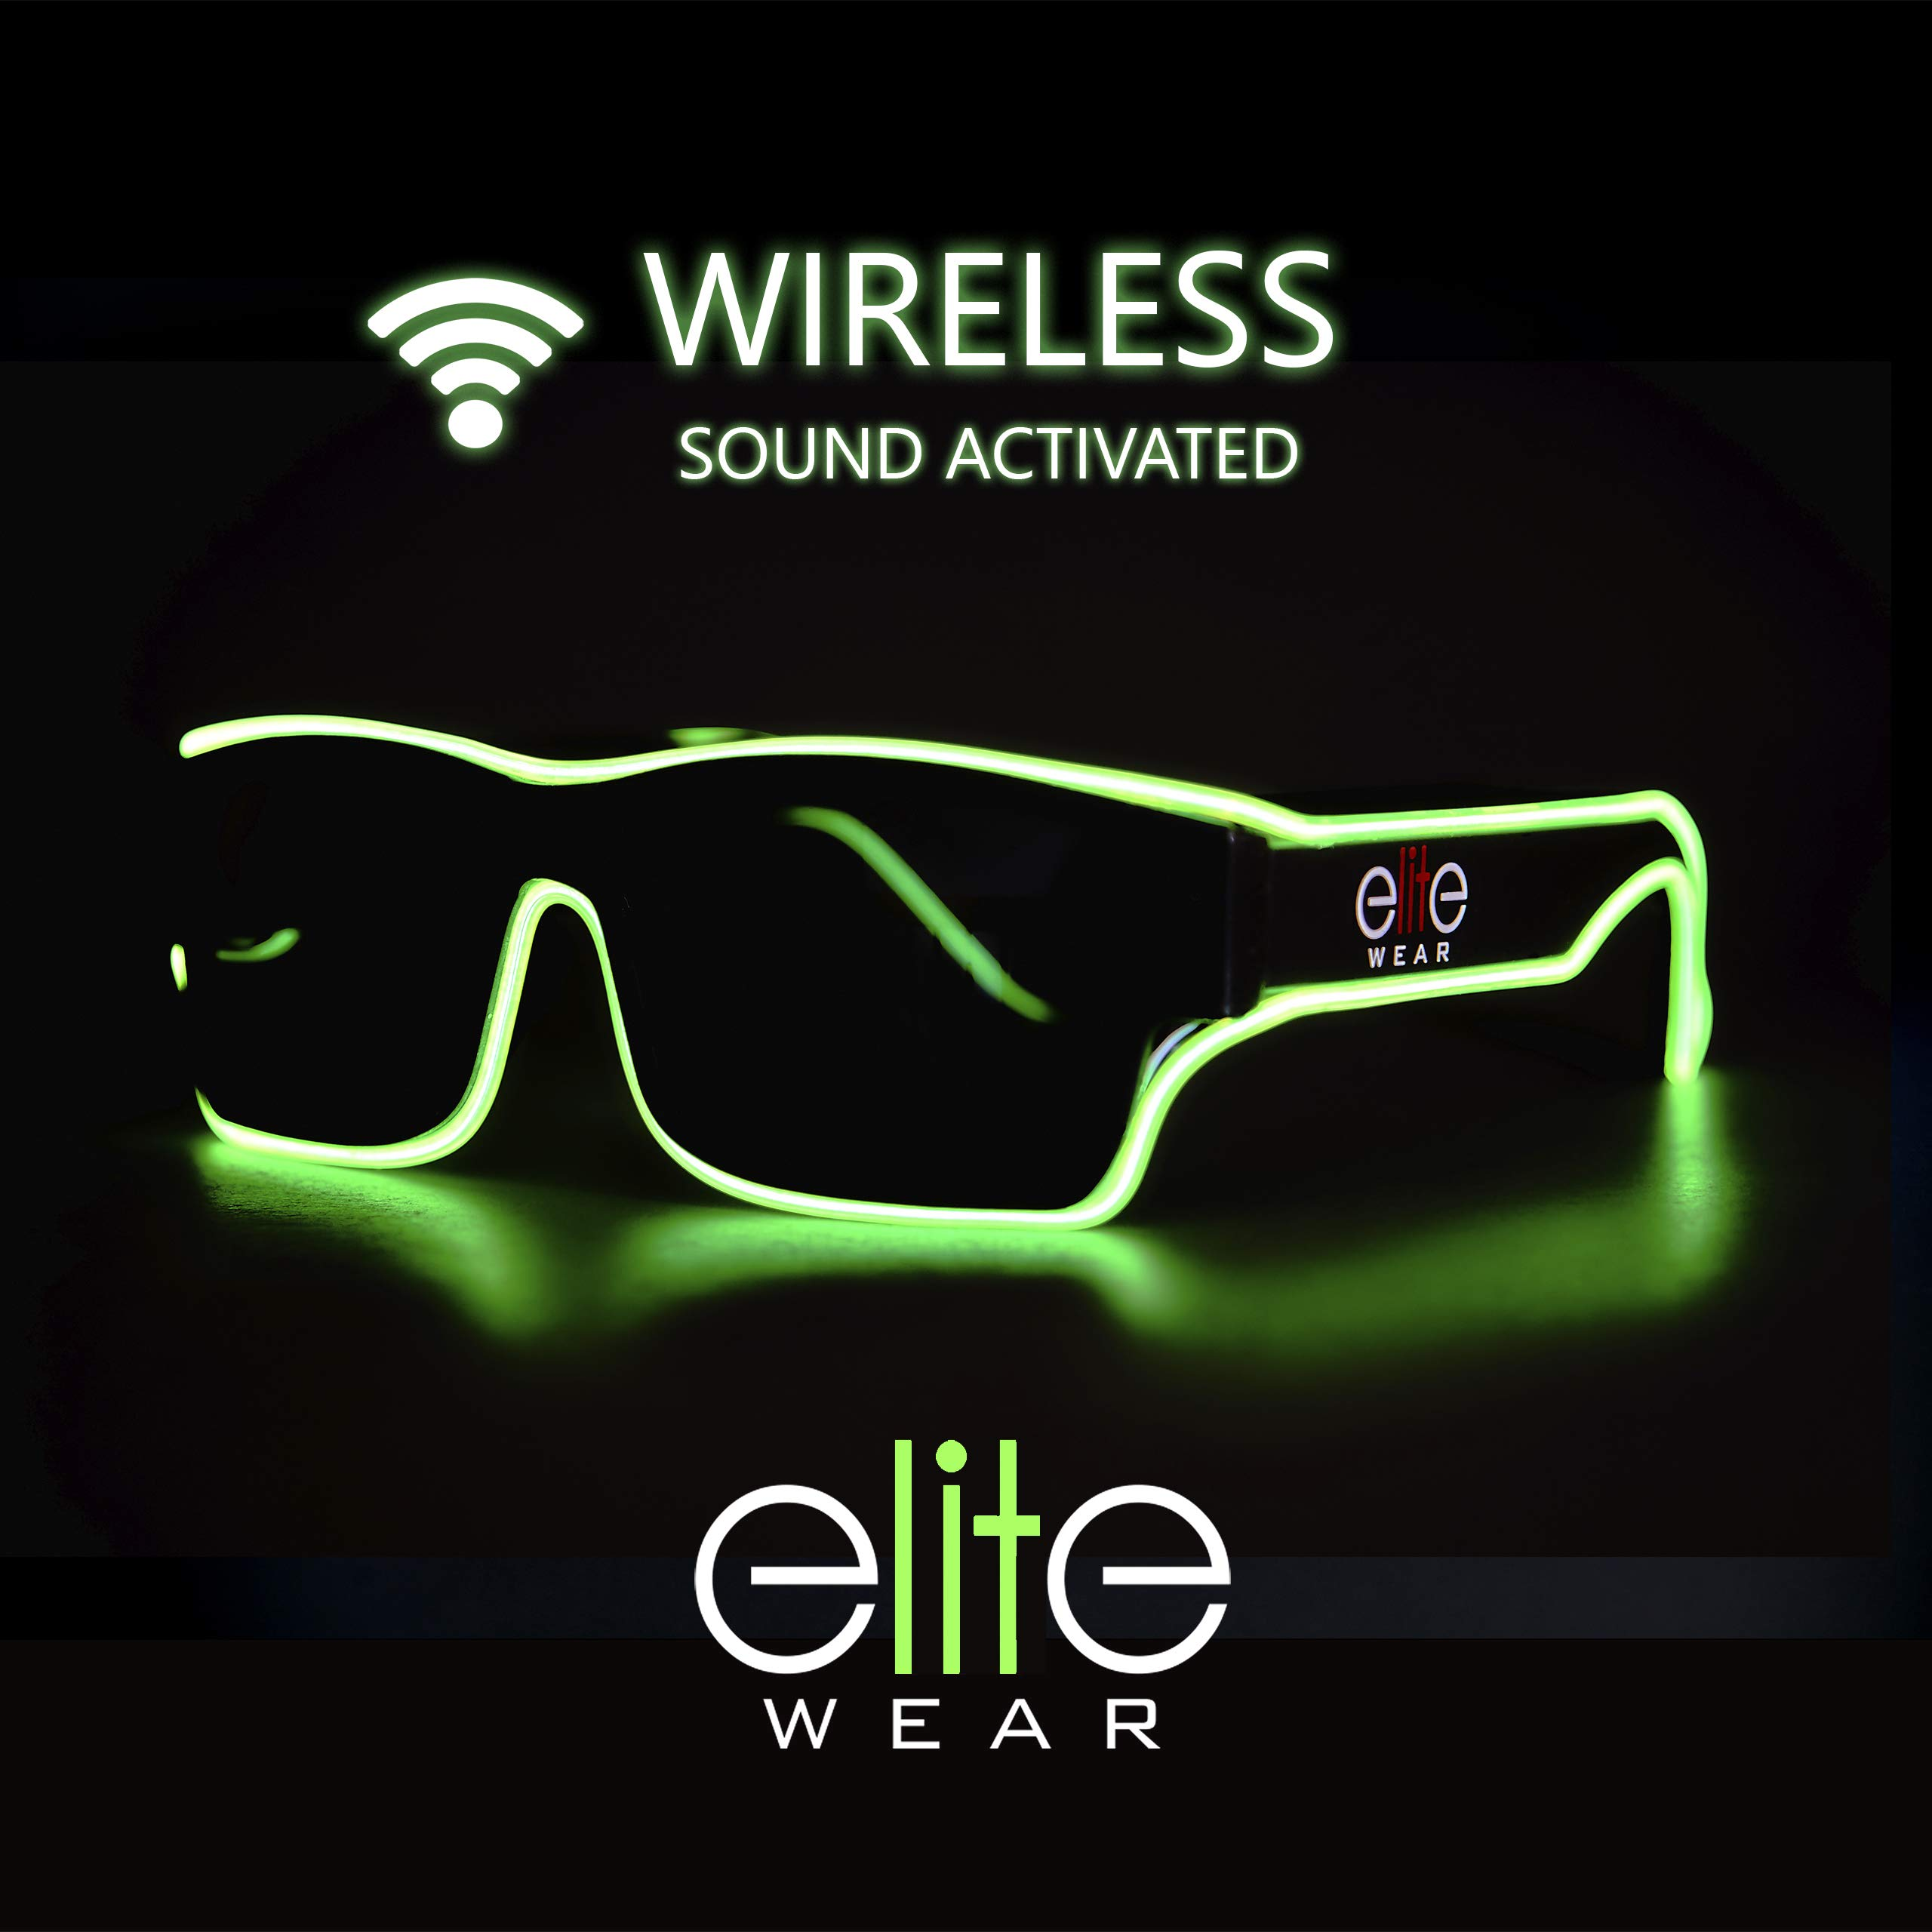 Elite Wear Wireless Sound Activated Rechargeable Electroluminescent Light Up Glasses (Lime) by Elite Wear